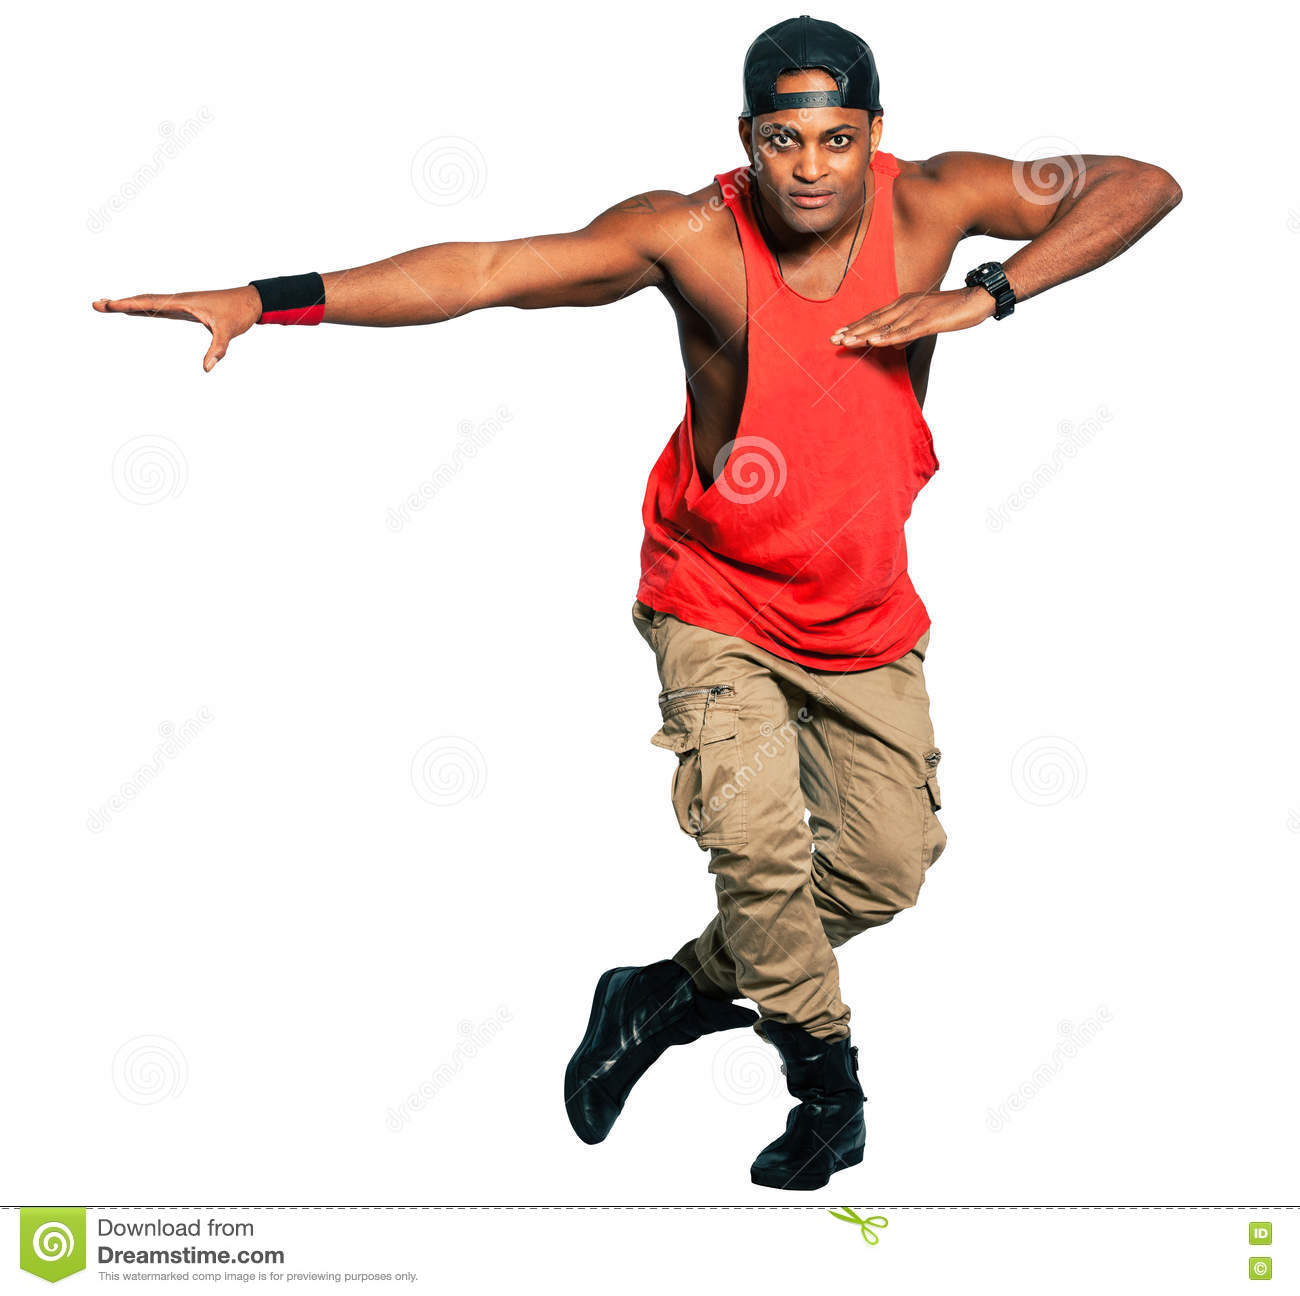 Dancer Black Man Full Isolated On White Background. PNG Available.